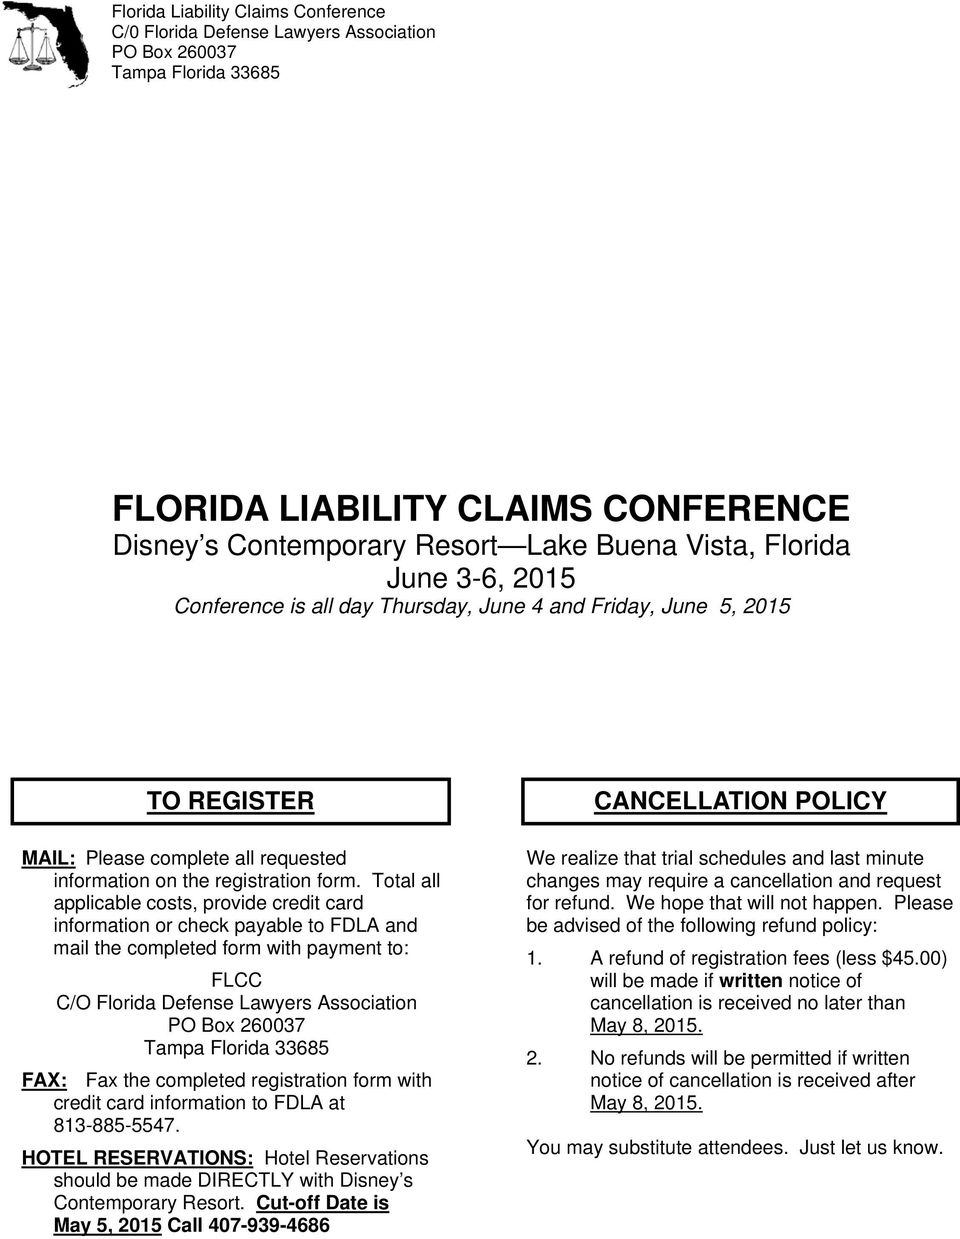 Total all applicable costs, provide credit card information or check payable to FDLA and mail the completed form with payment to: FLCC C/O Florida Defense Lawyers Association PO Box 260037 Tampa